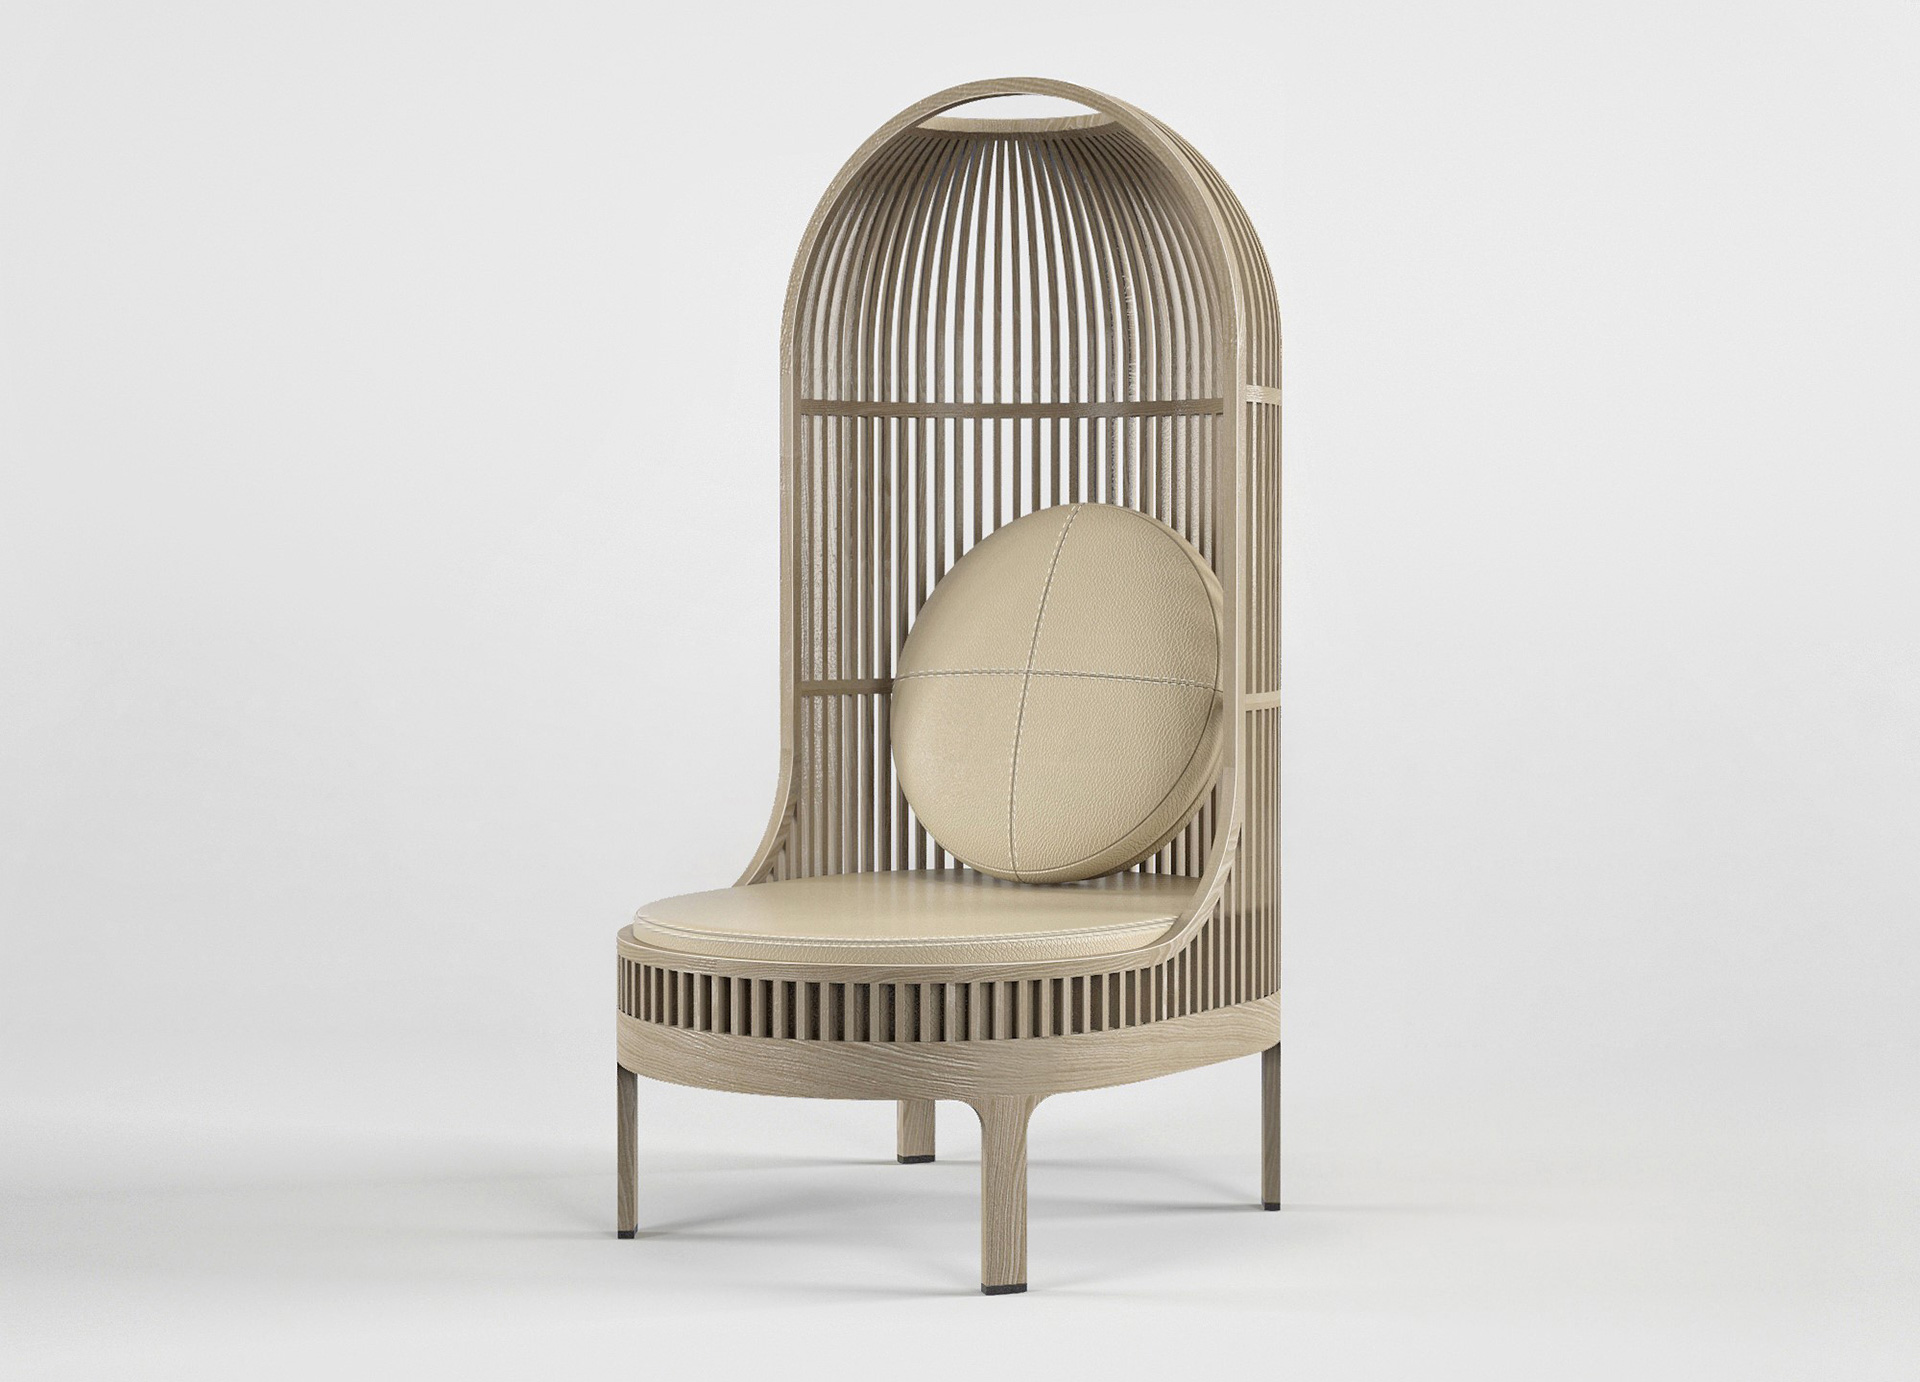 Nest Chair | Made in Turkey: Curated by Arhan Kayar | STIRworld